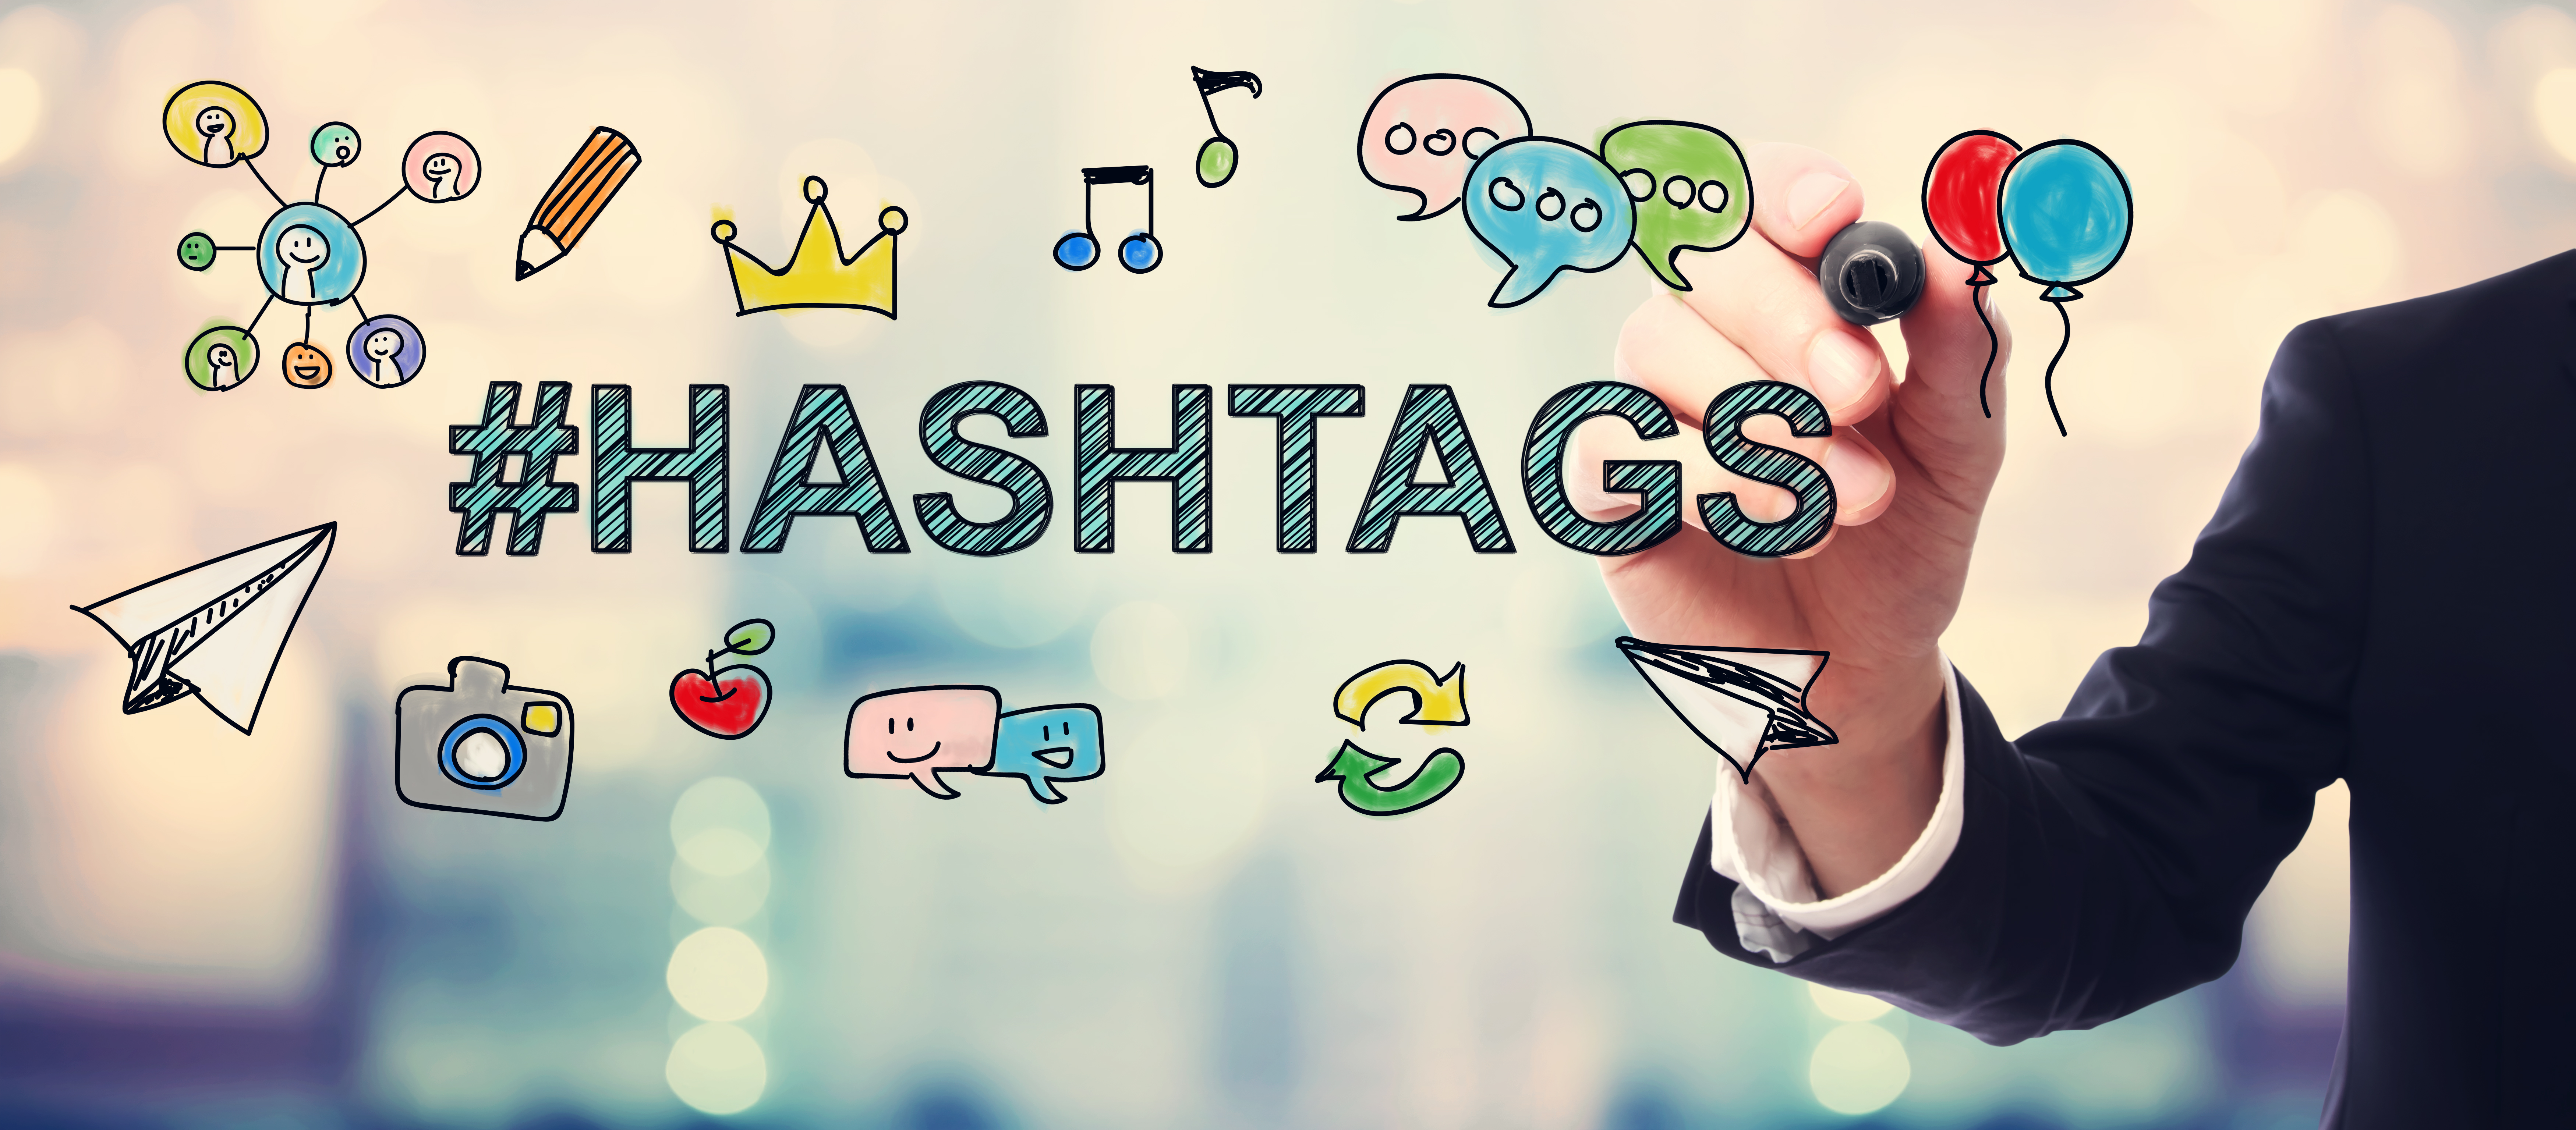 Hashtag Strategy: Use hashtags to promote your brand